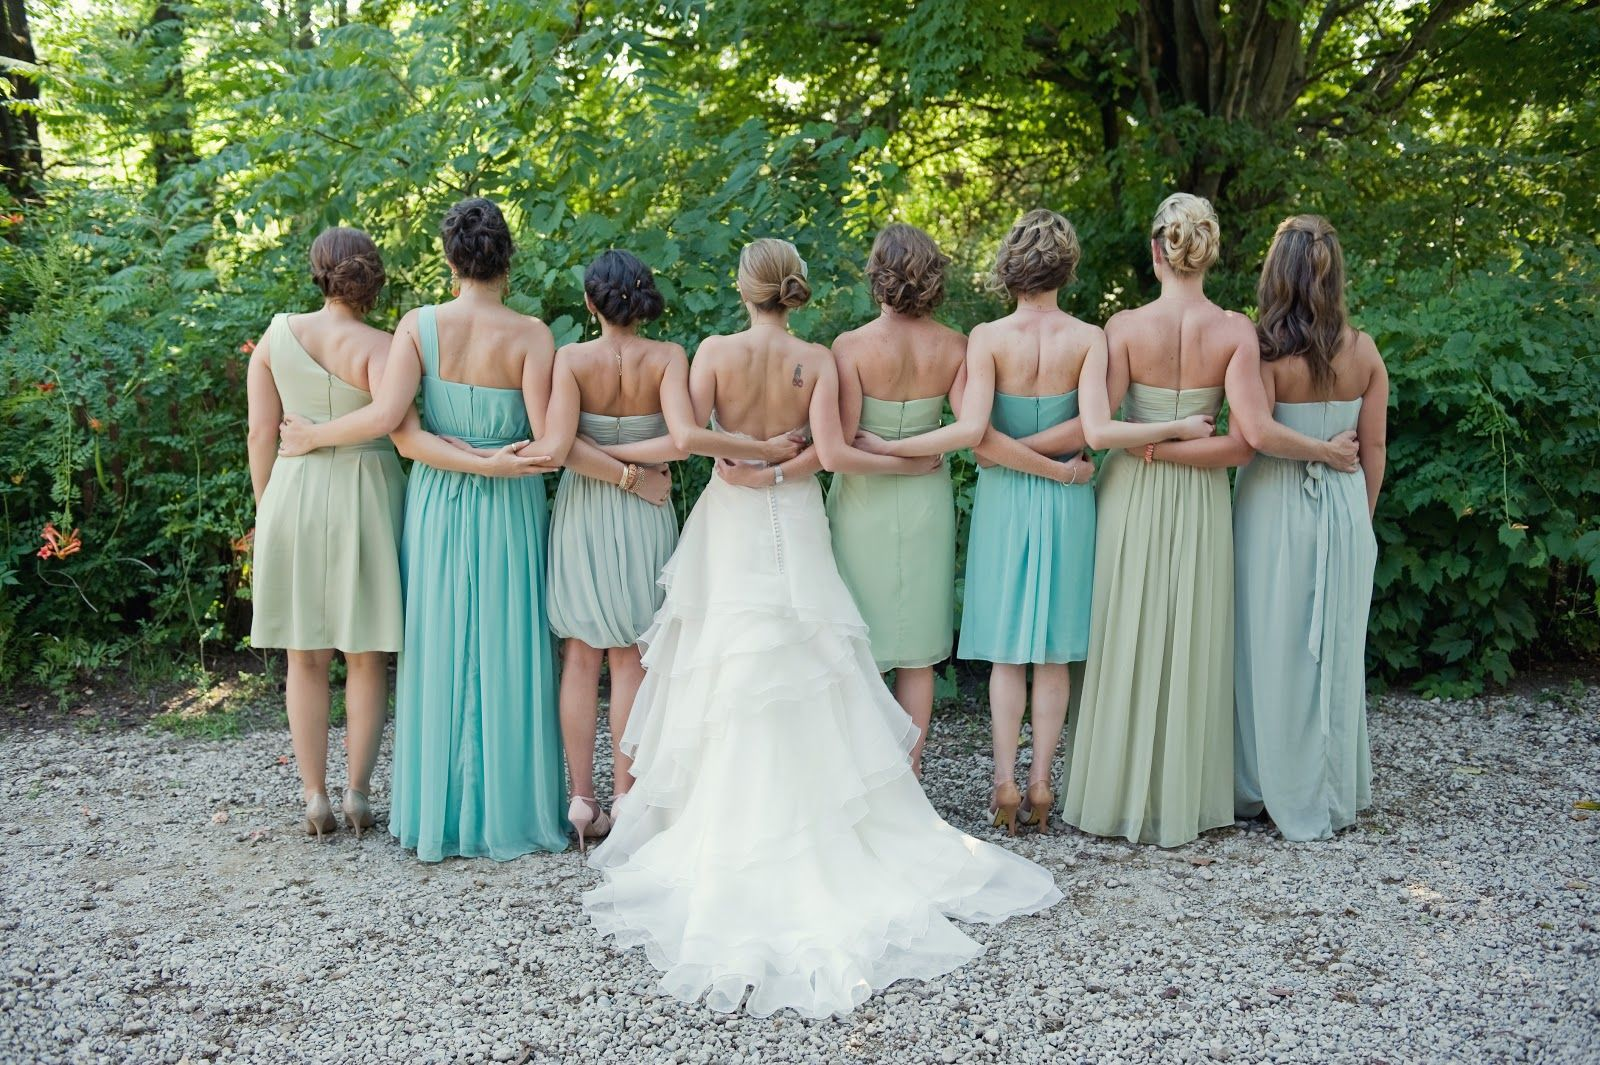 Bridesmaids pic arms intertwined mismatched green dresses bridesmaids pic arms intertwined mismatched green dresses ombrellifo Choice Image